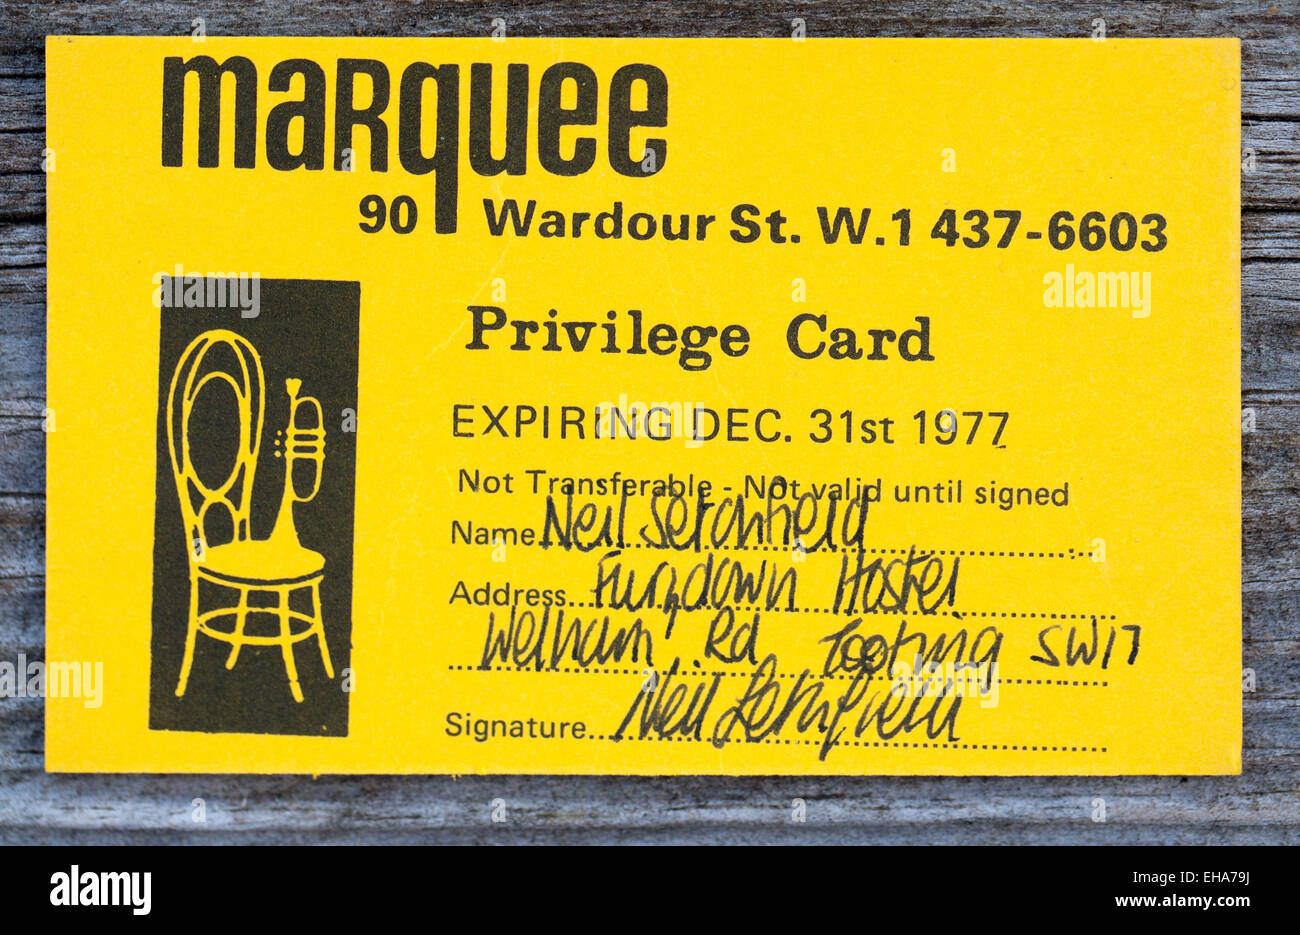 Privilege Membership Card to the Marquee Club in Wardour Street London 1977 - Stock Image